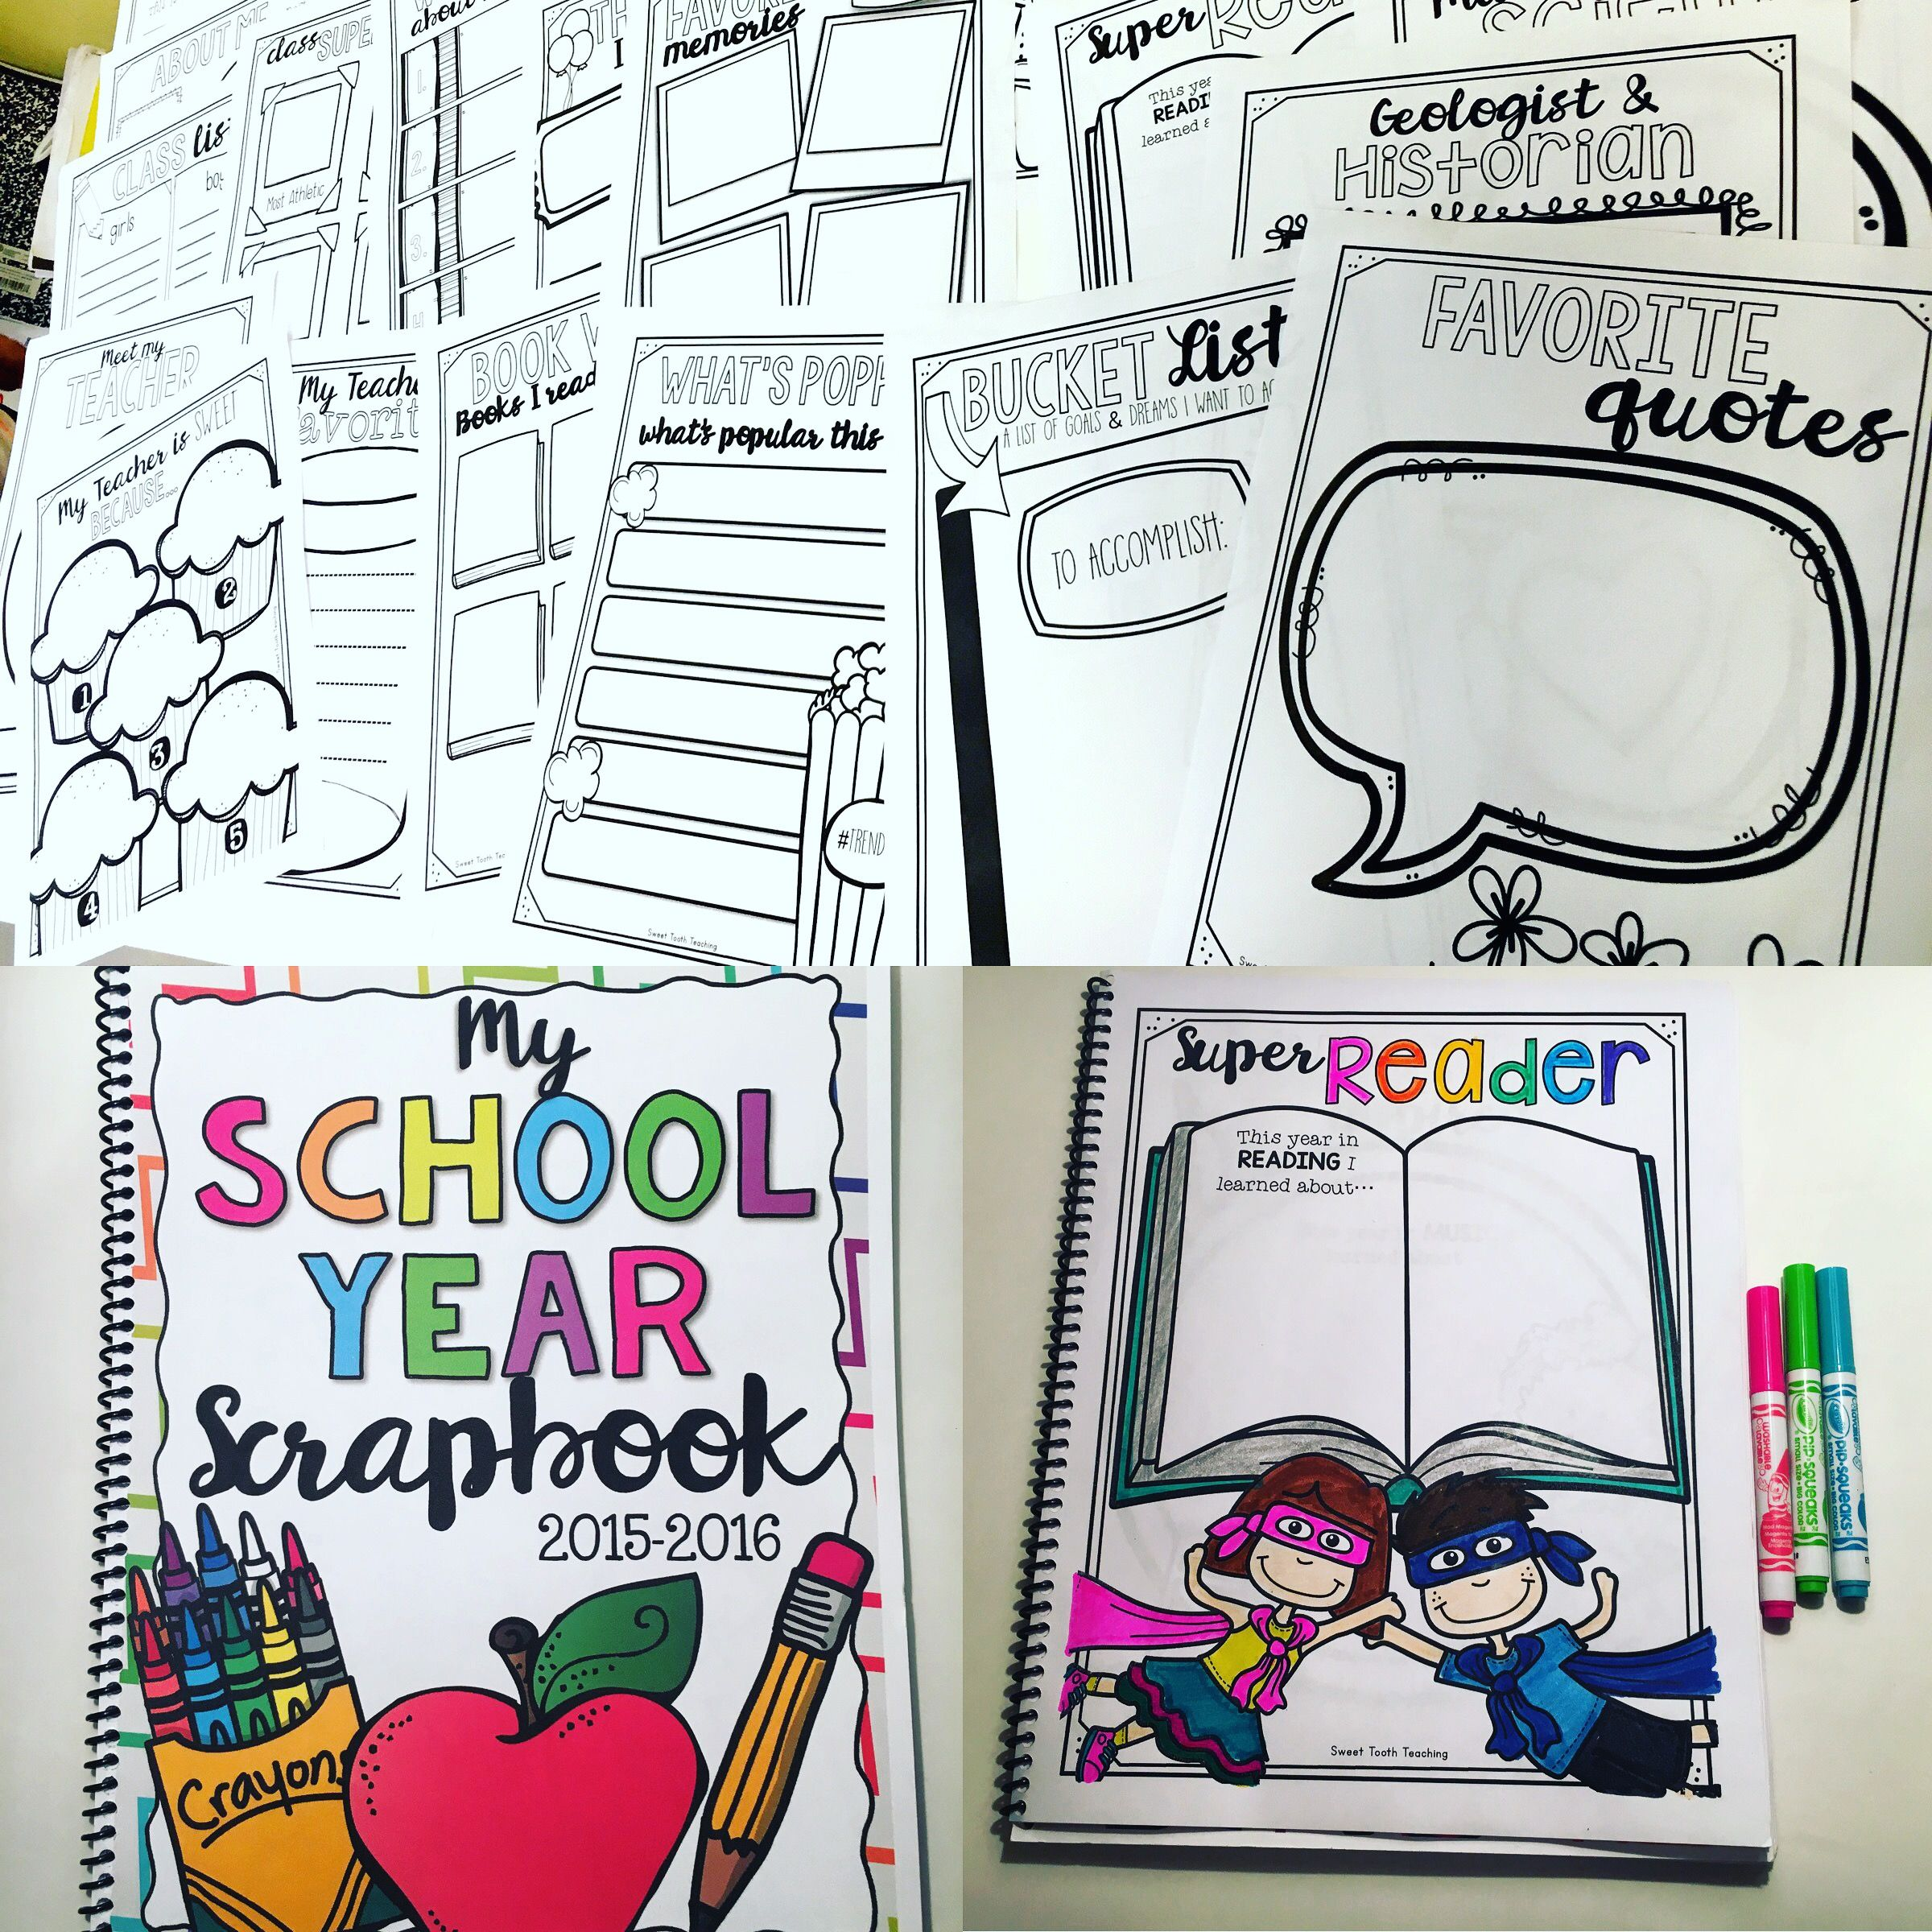 How to scrapbook school years - Scrapbook Includes Everything Your Students Need To Make Their School Year Memorable This 62